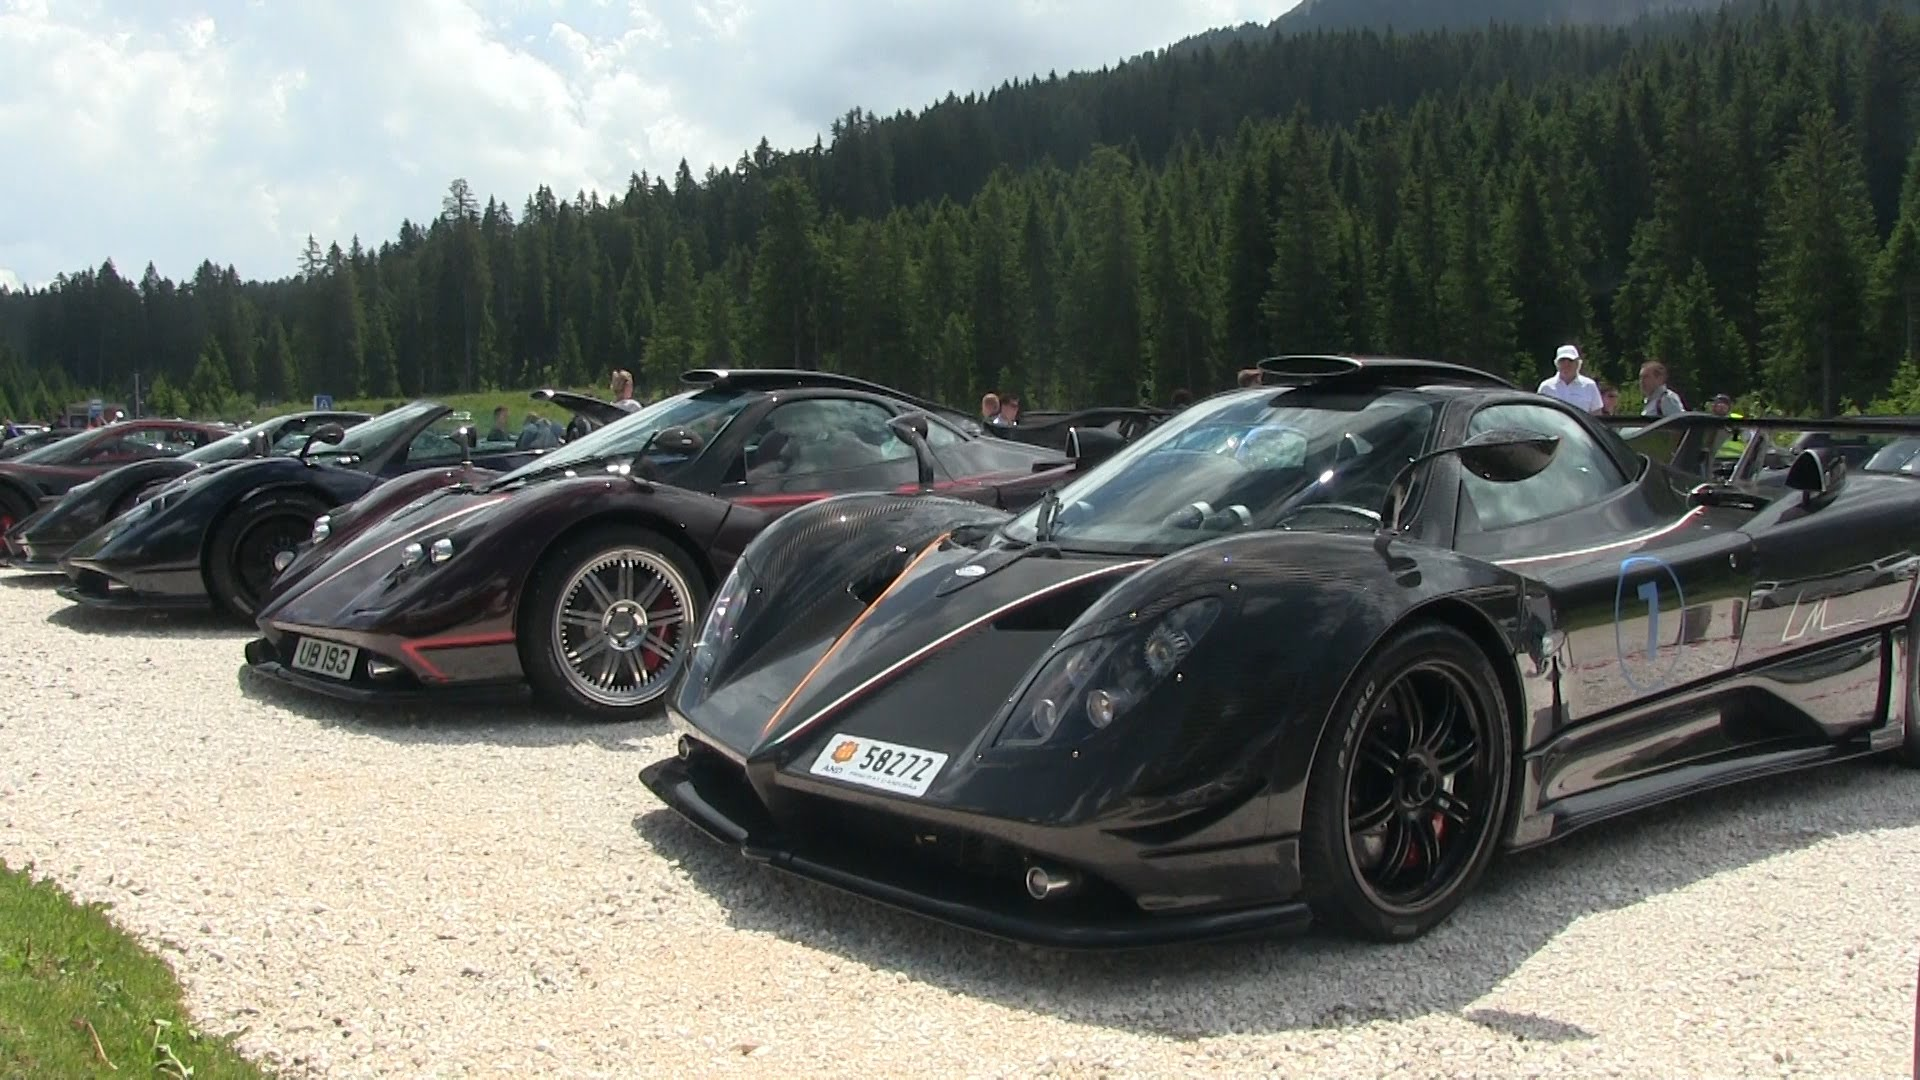 Rarest Pagani Hypercars Form Carbon Fiber Gallery in Italy ...